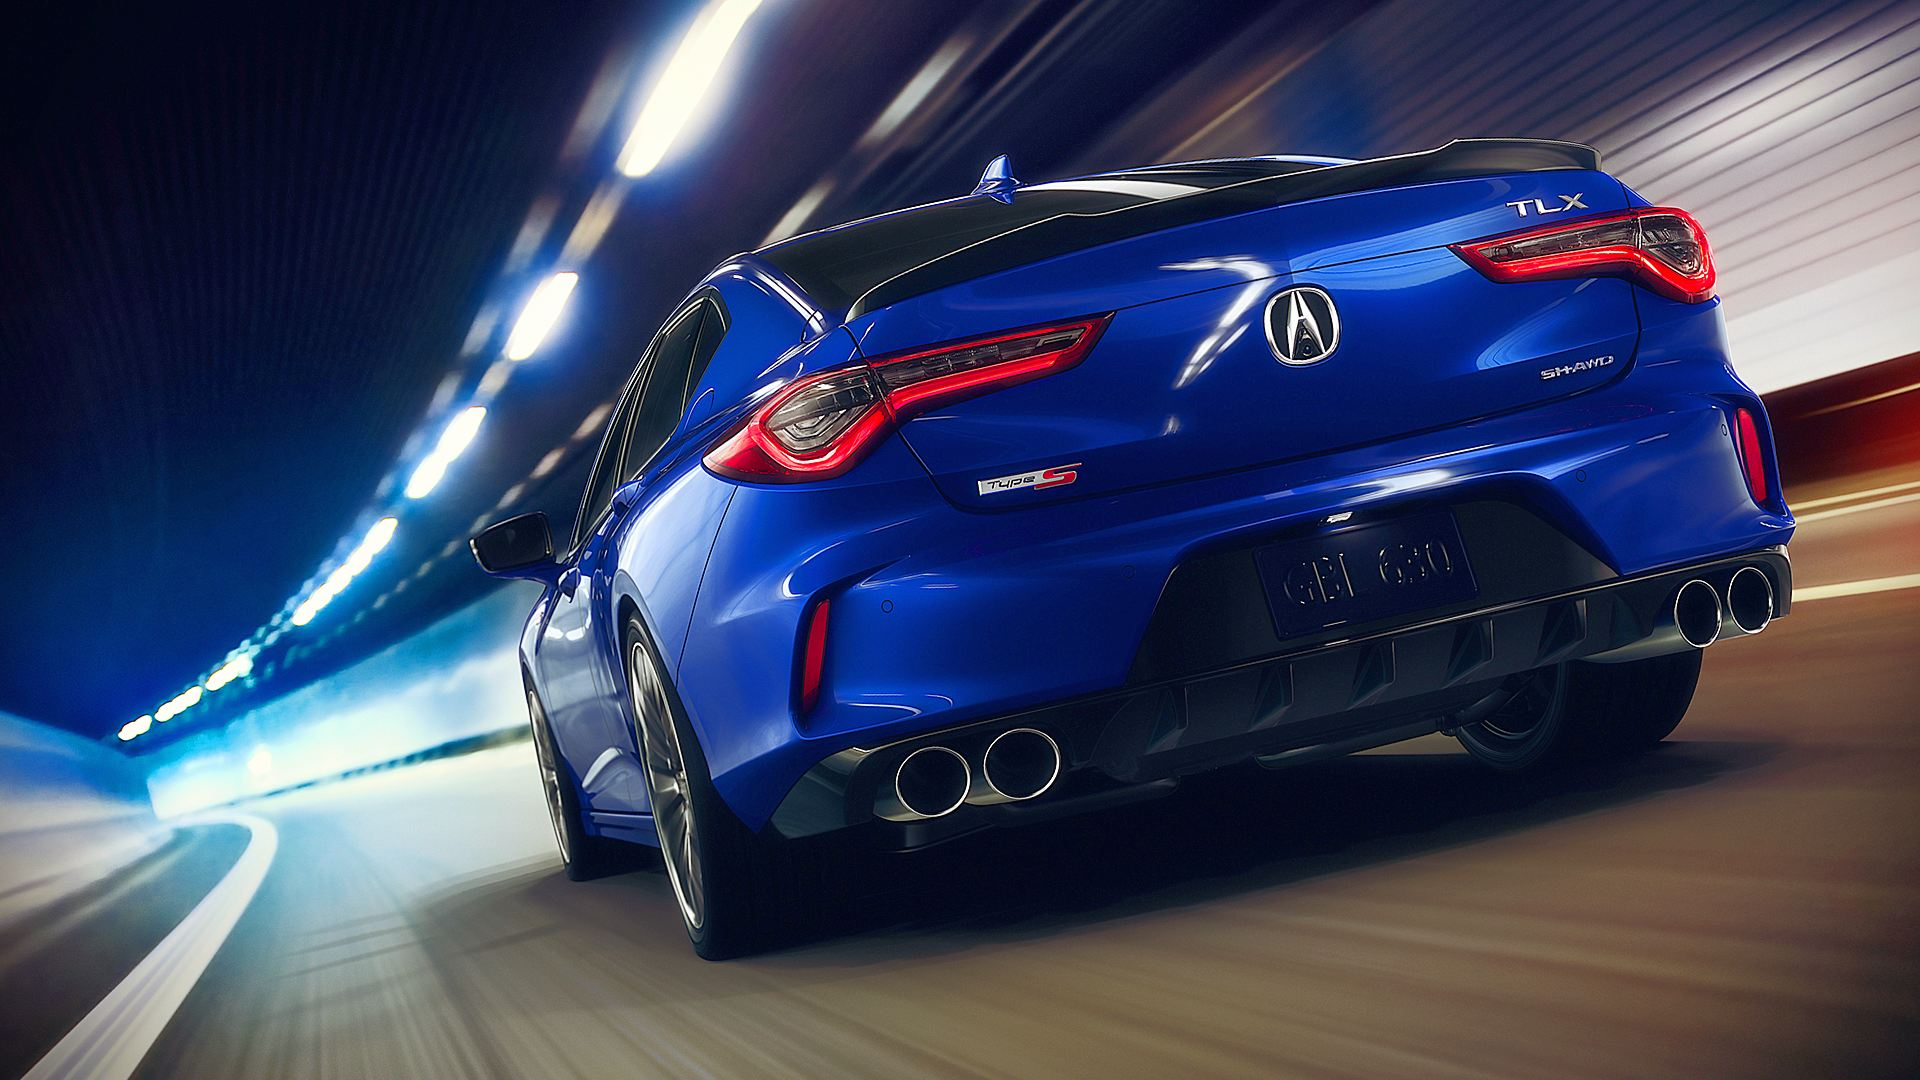 2021 Acura TLX Type S Wallpaper Images 1920x1080